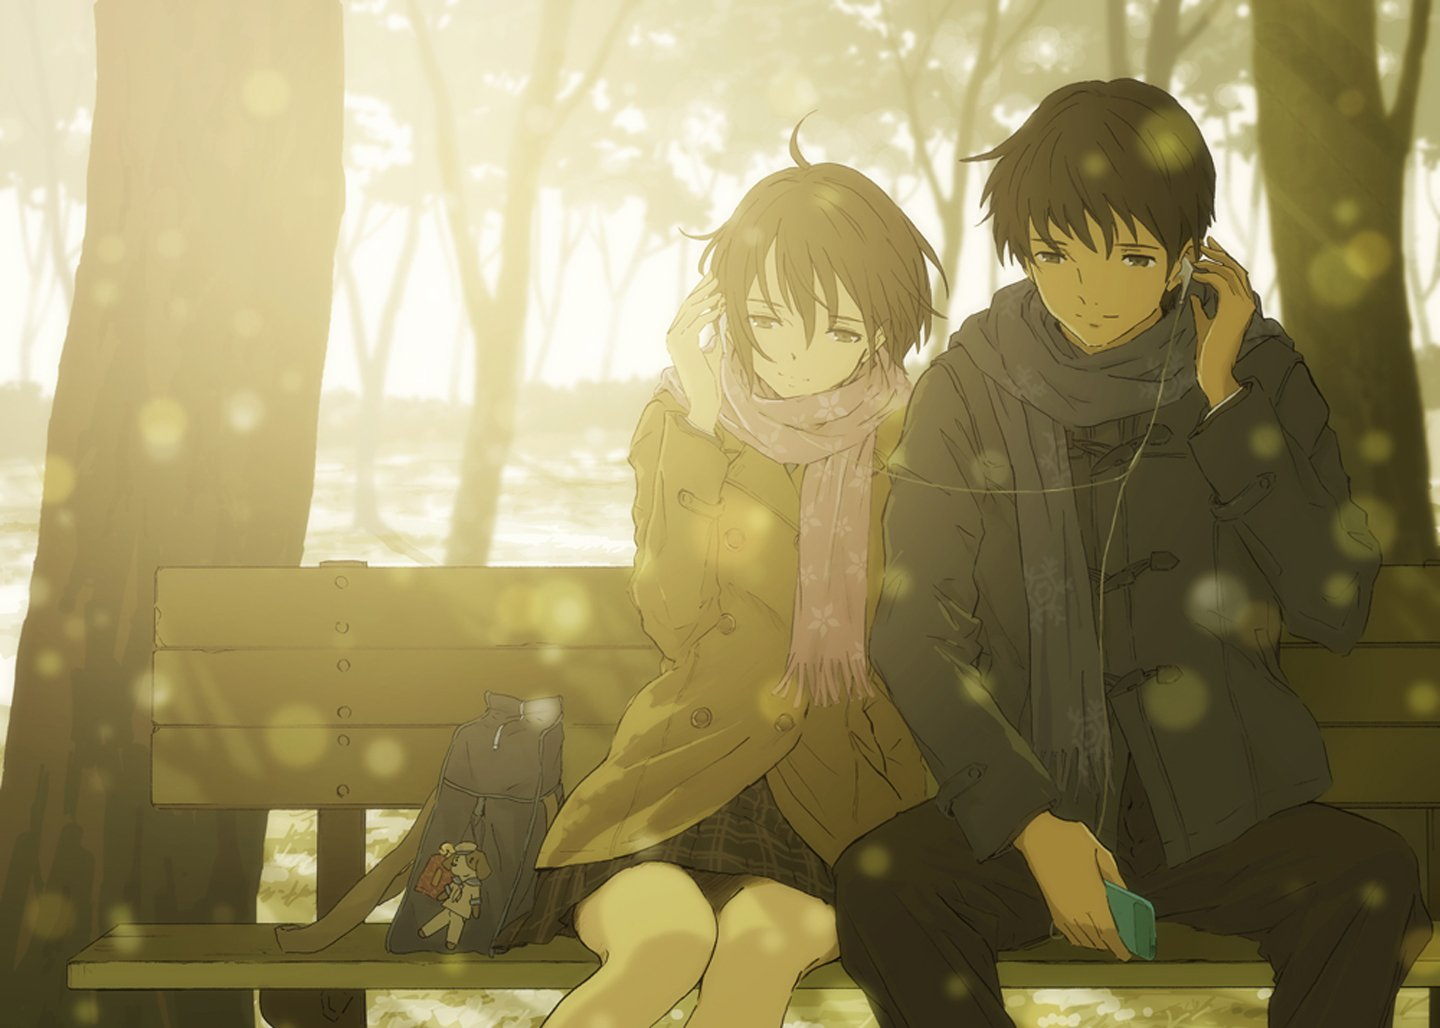 Hd Wallpaper Love couple Animated : Anime couple Romantic Wallpaper Hd Super Wallpapers